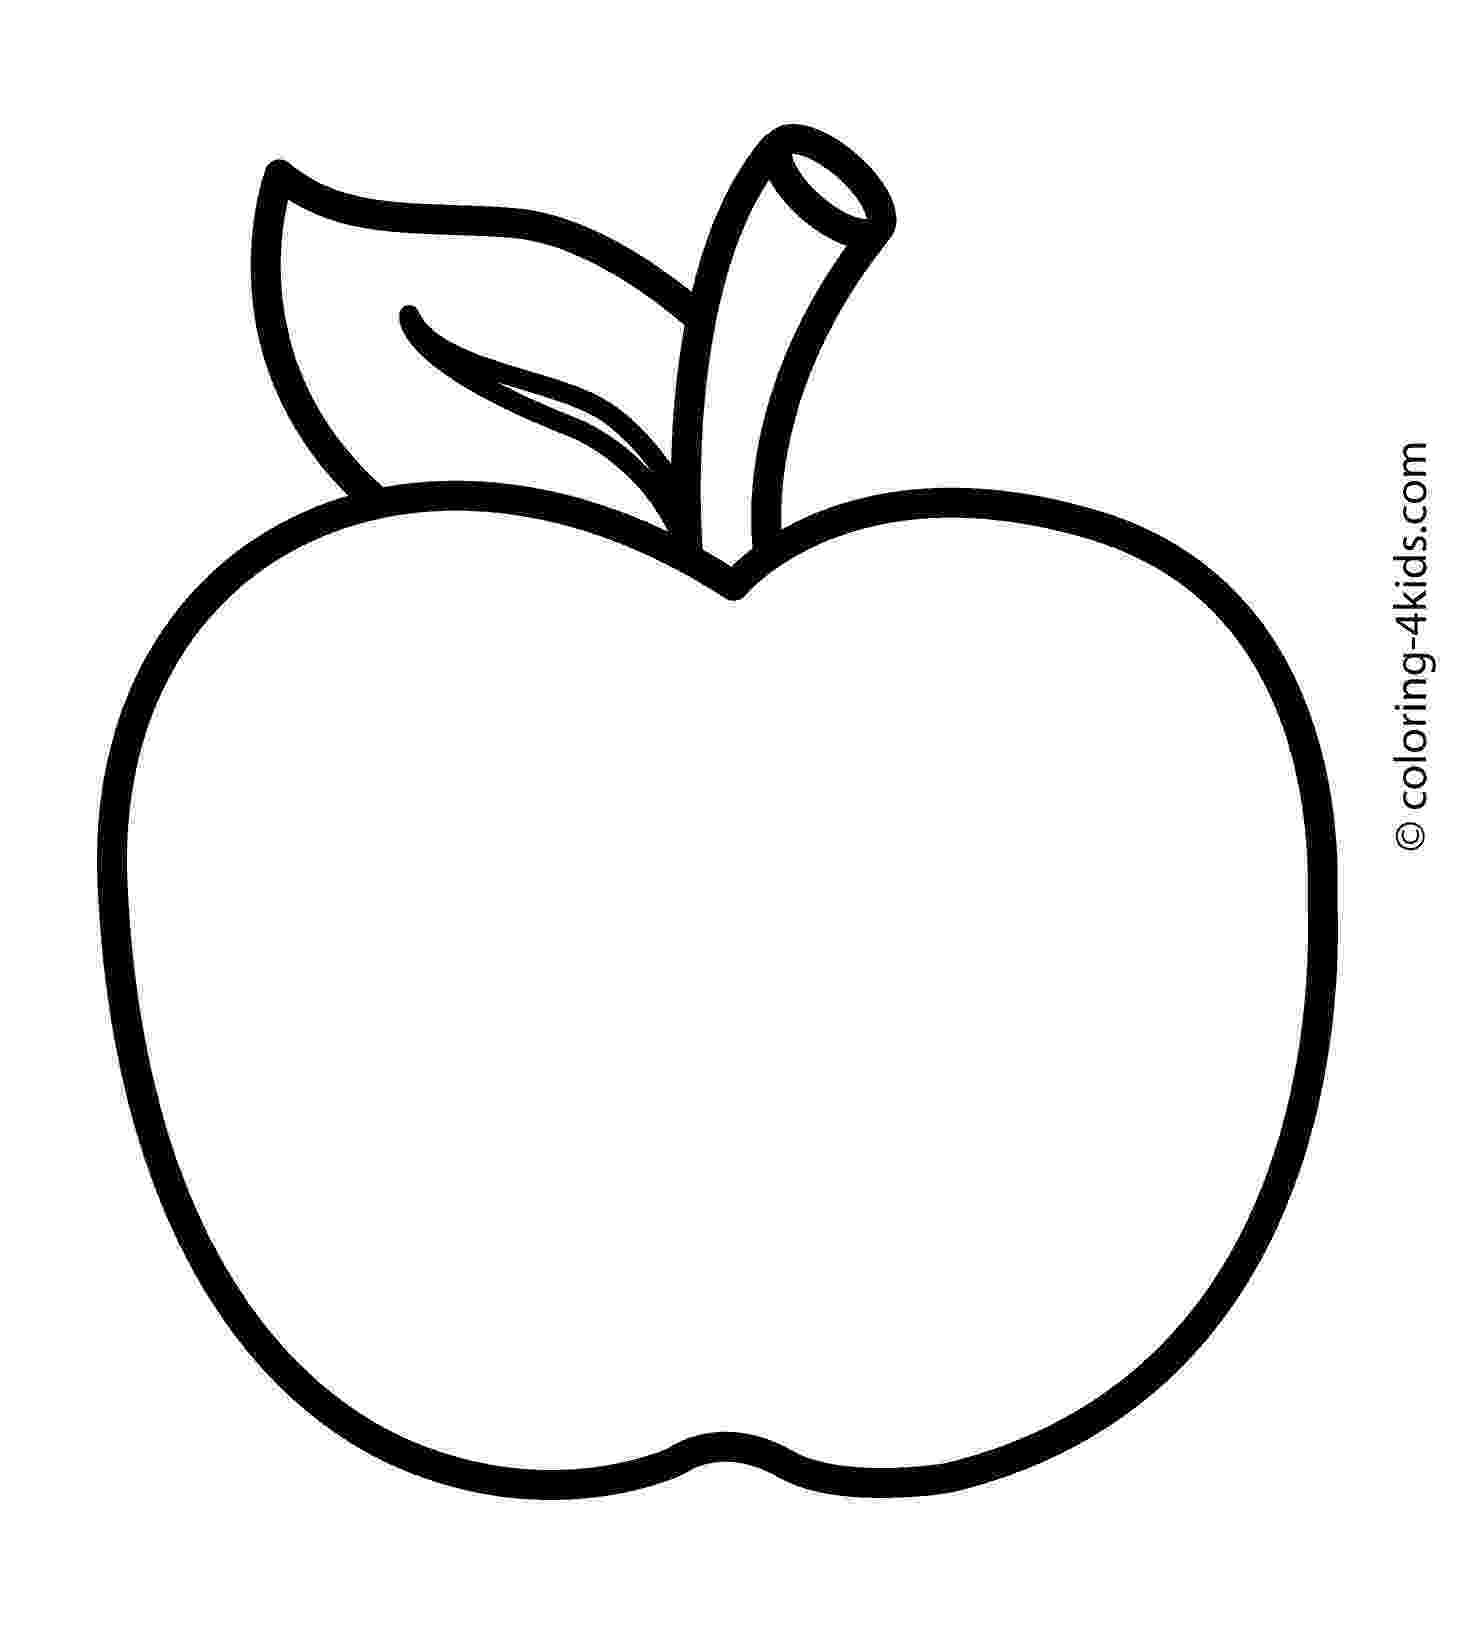 apple coloring picture apple coloring pages fotolipcom rich image and wallpaper apple picture coloring